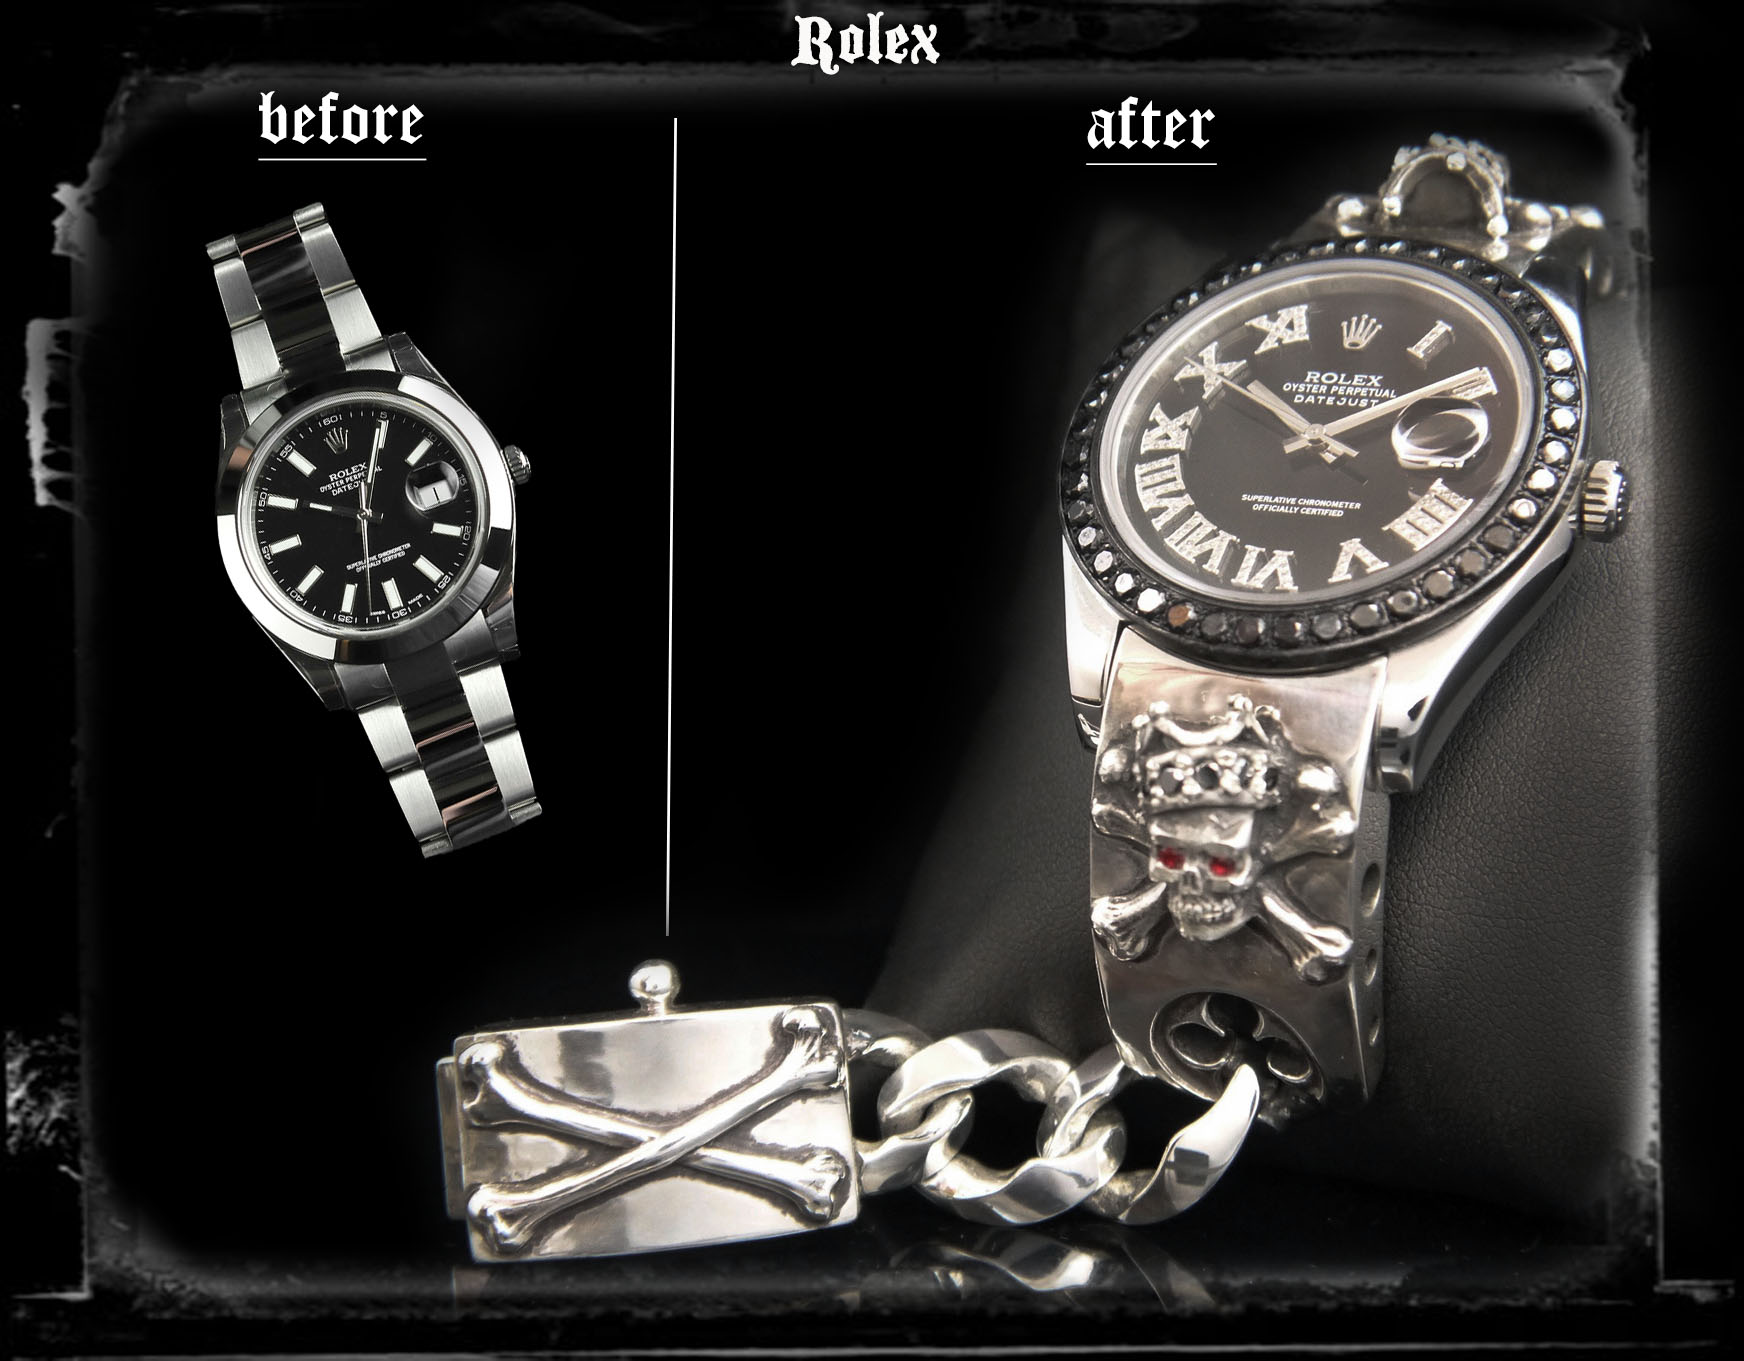 rolex-suicide-king-customize-watch-before-after-set.jpg